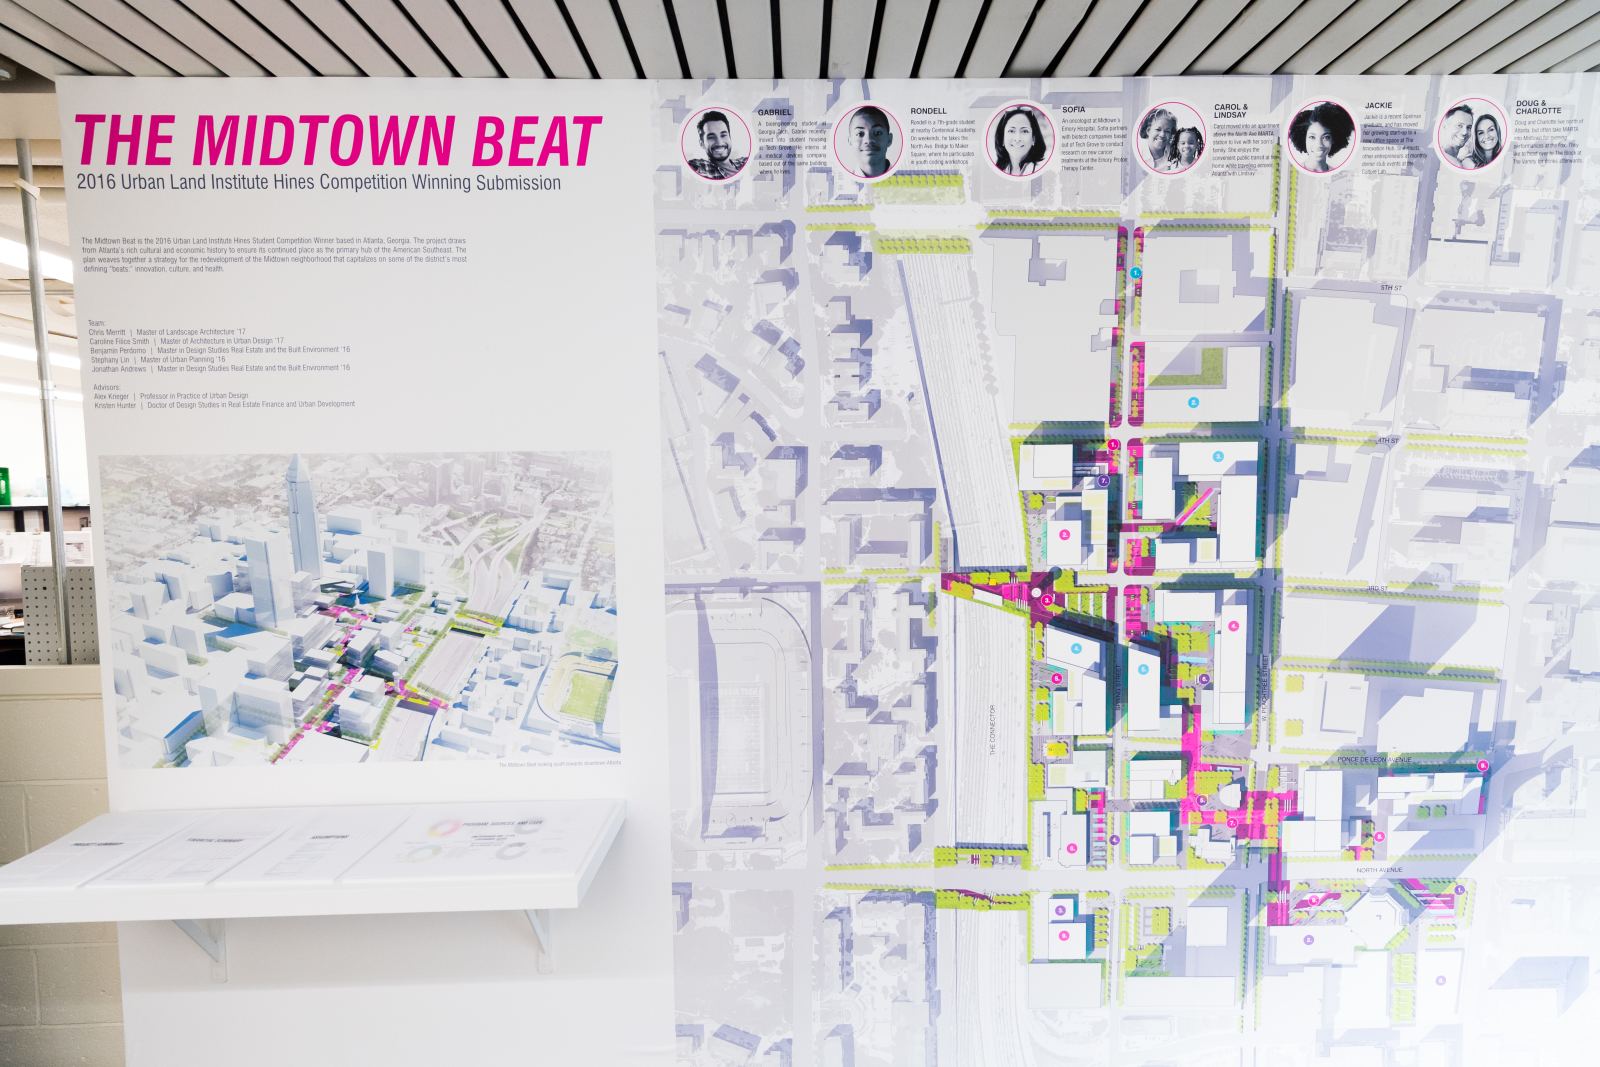 images urban planner in diagram carrier wiring thermostat alex krieger harvard graduate school of design exhibitions